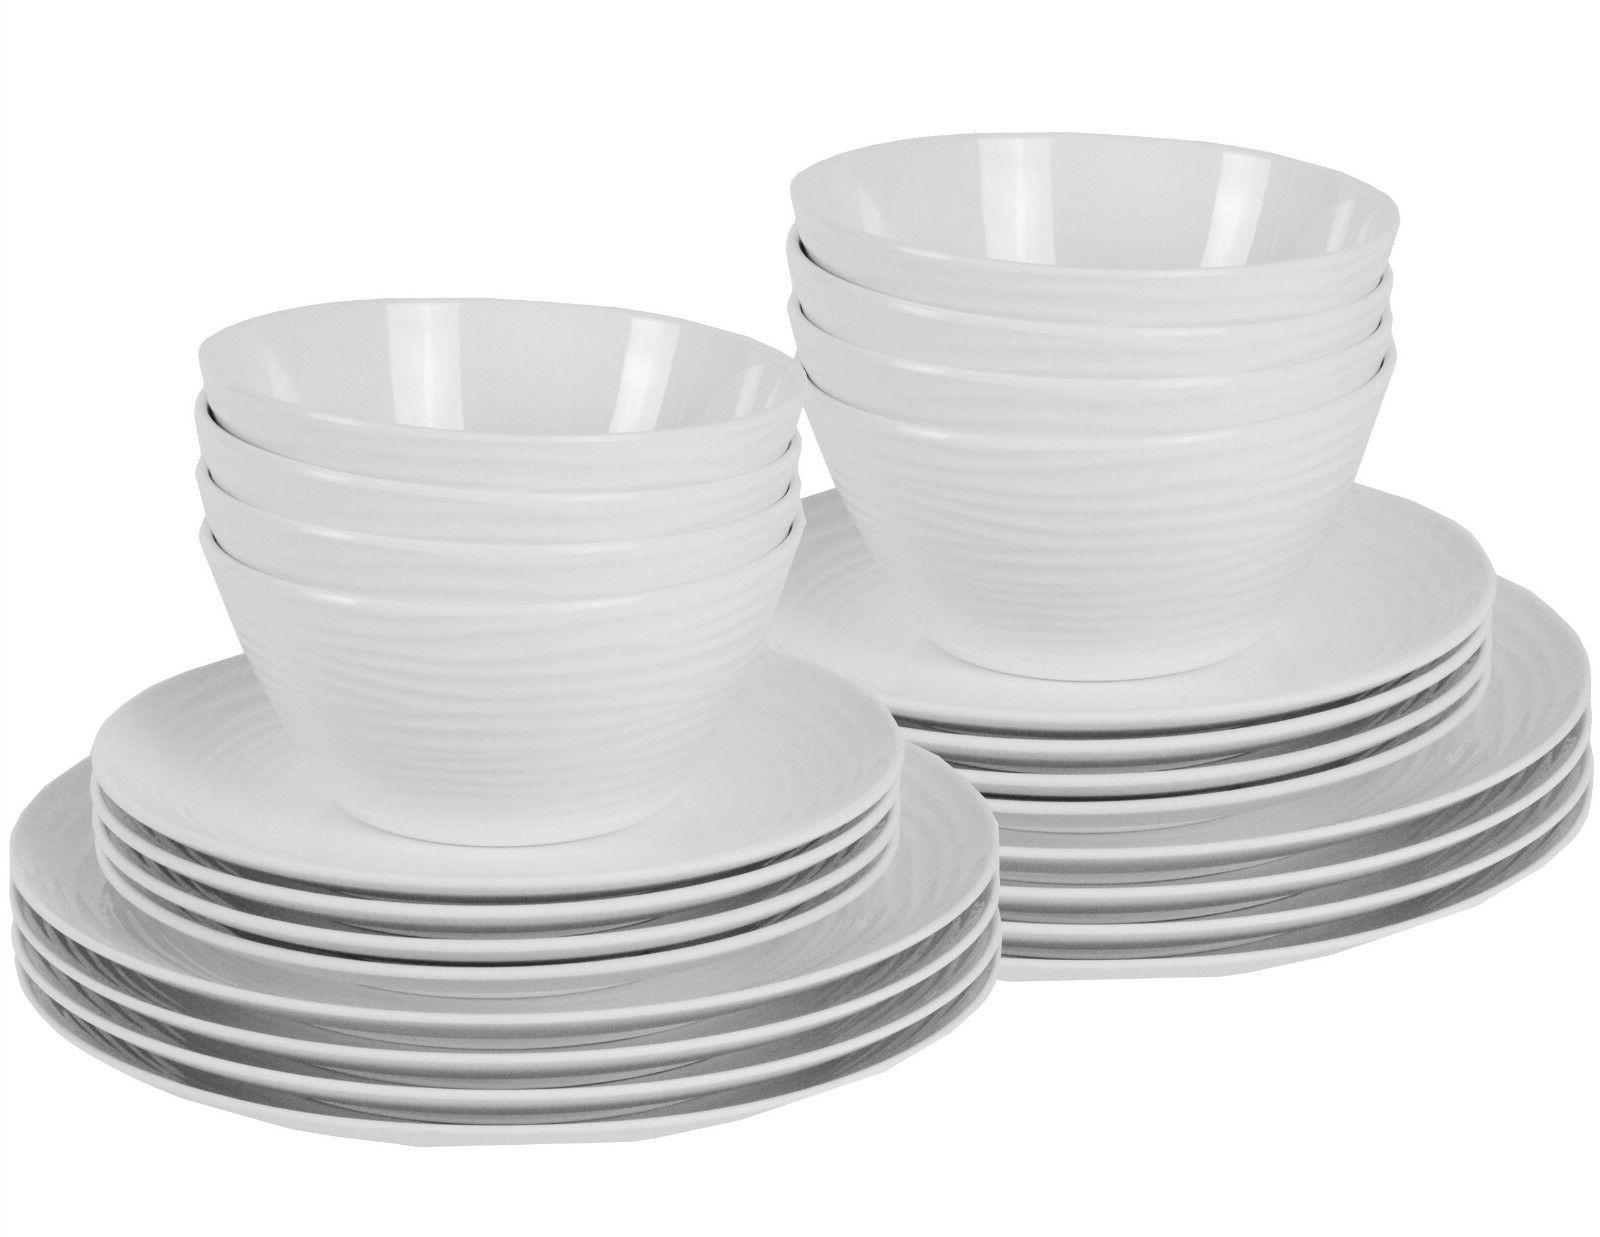 Parhoma White Plastic Set